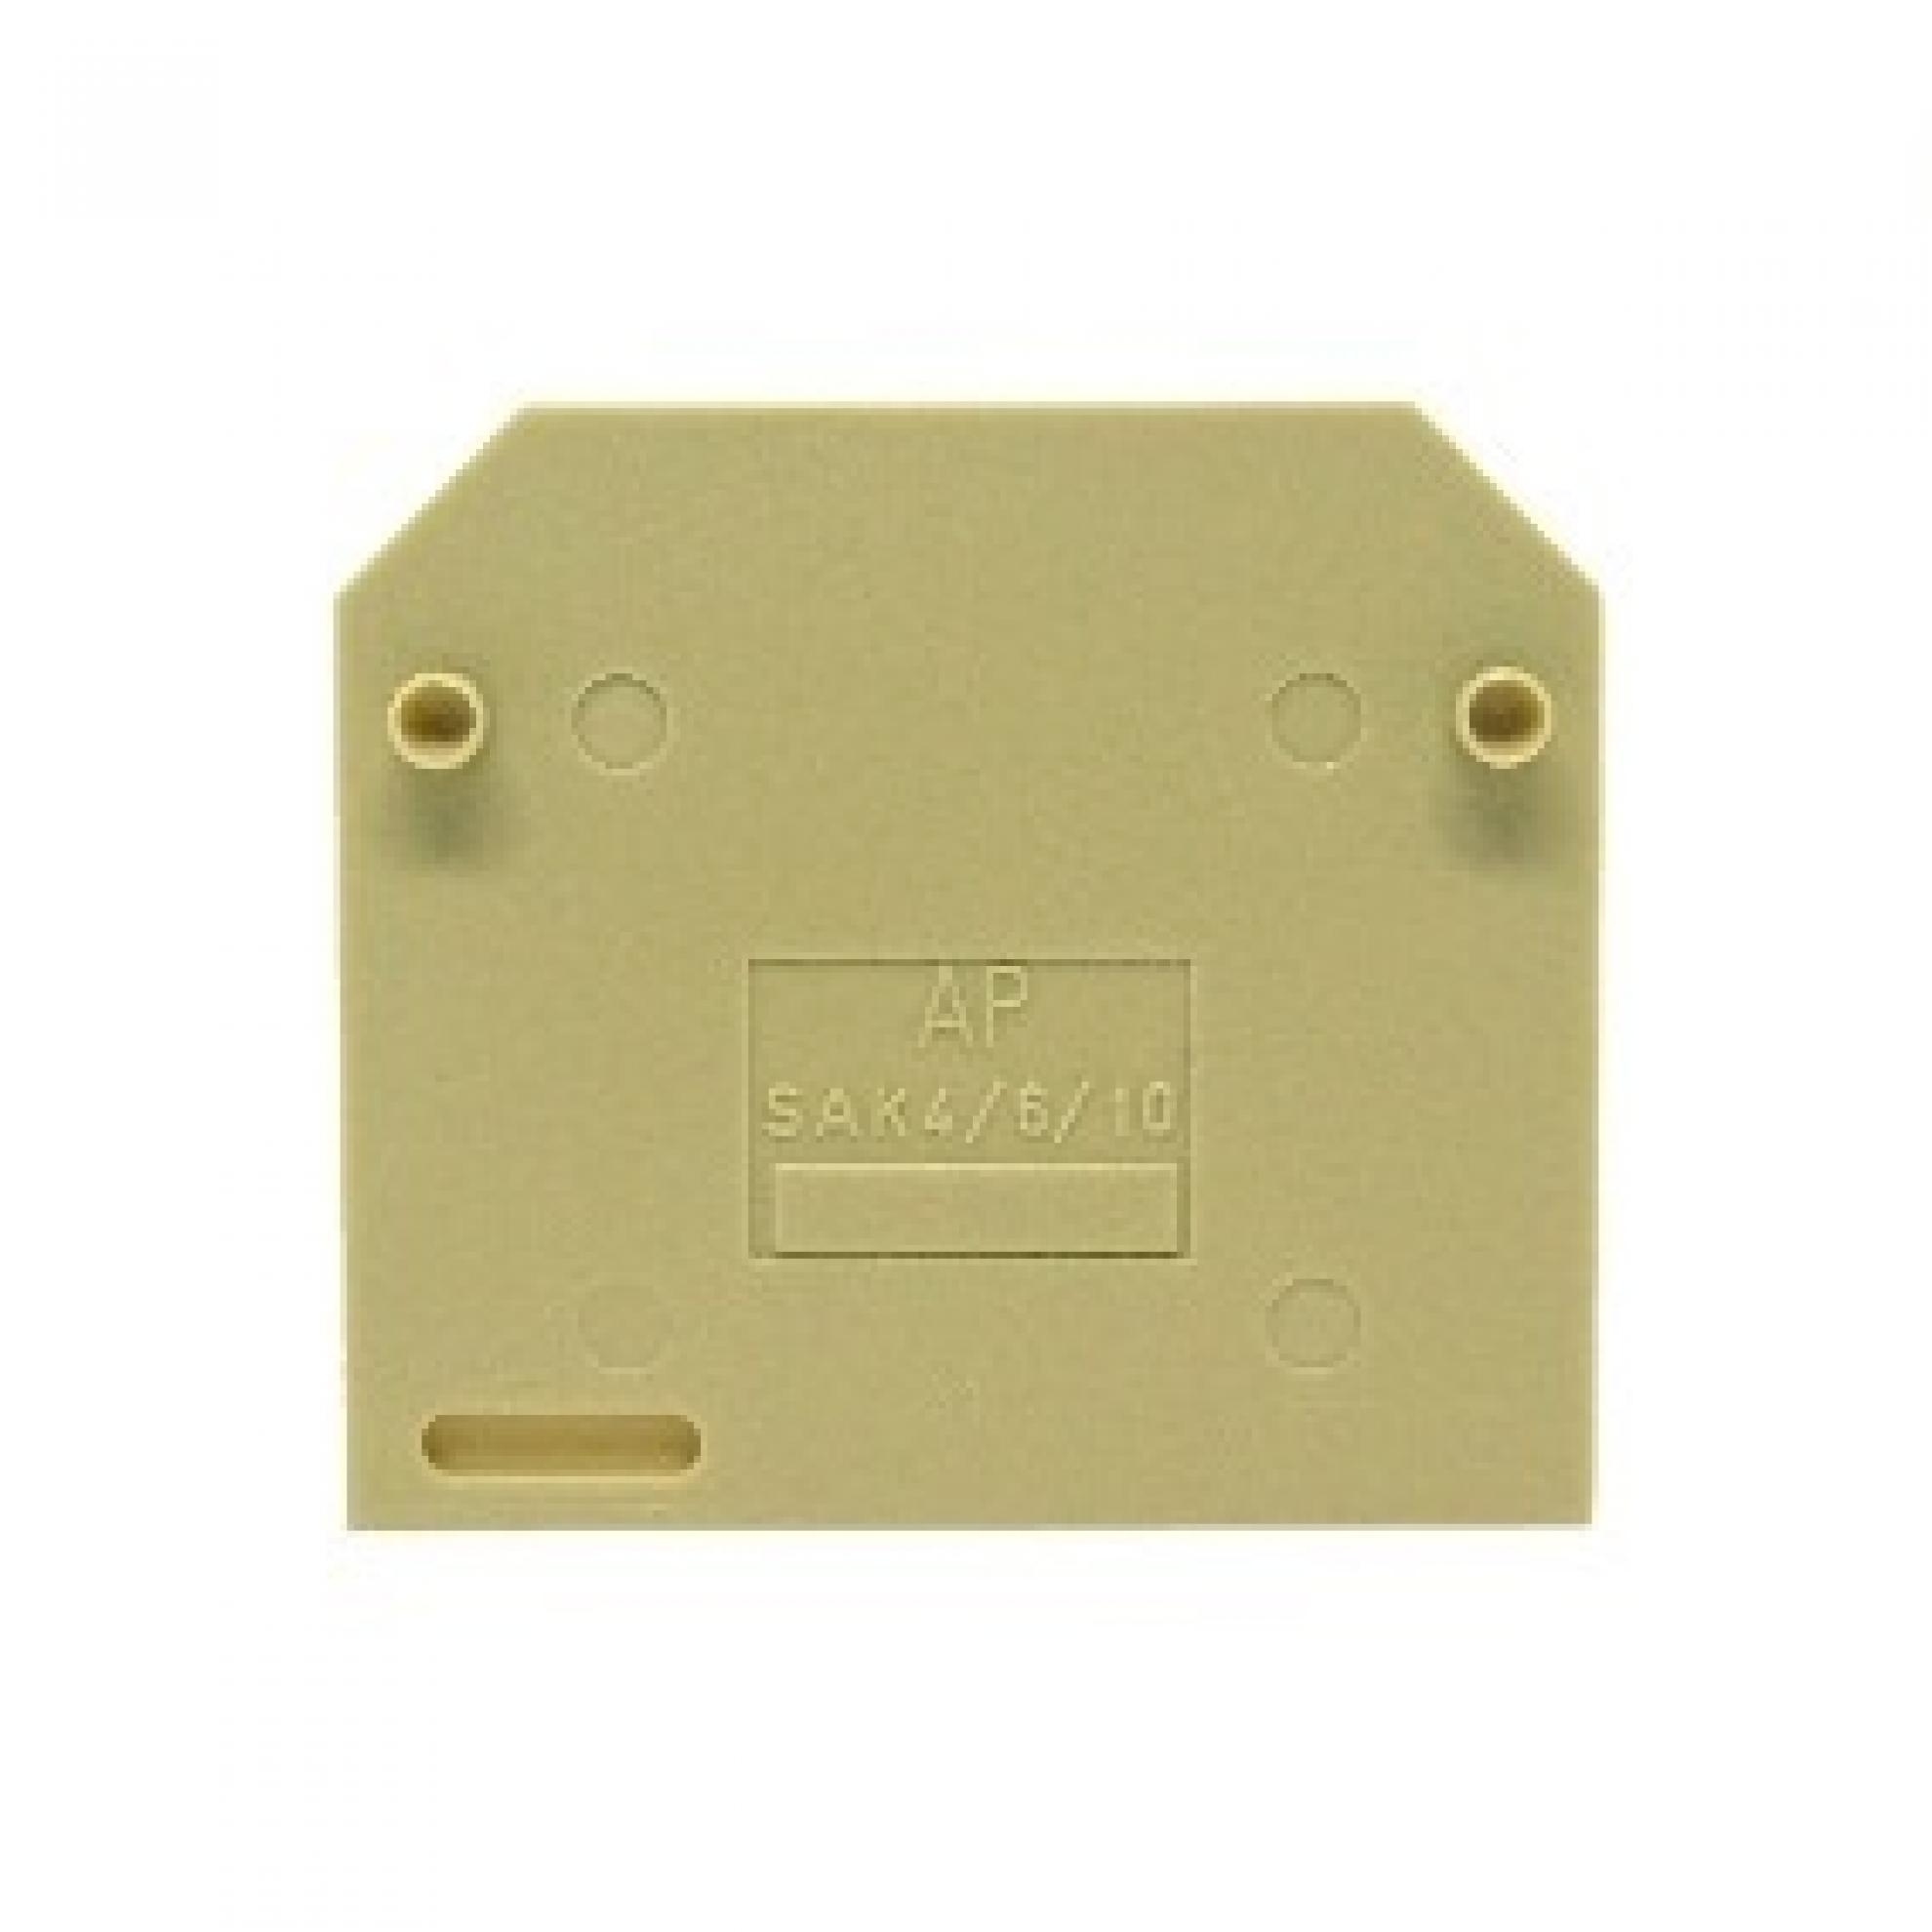 BORNE SAK PLACA FINAL 4 - 10 MM BEGE